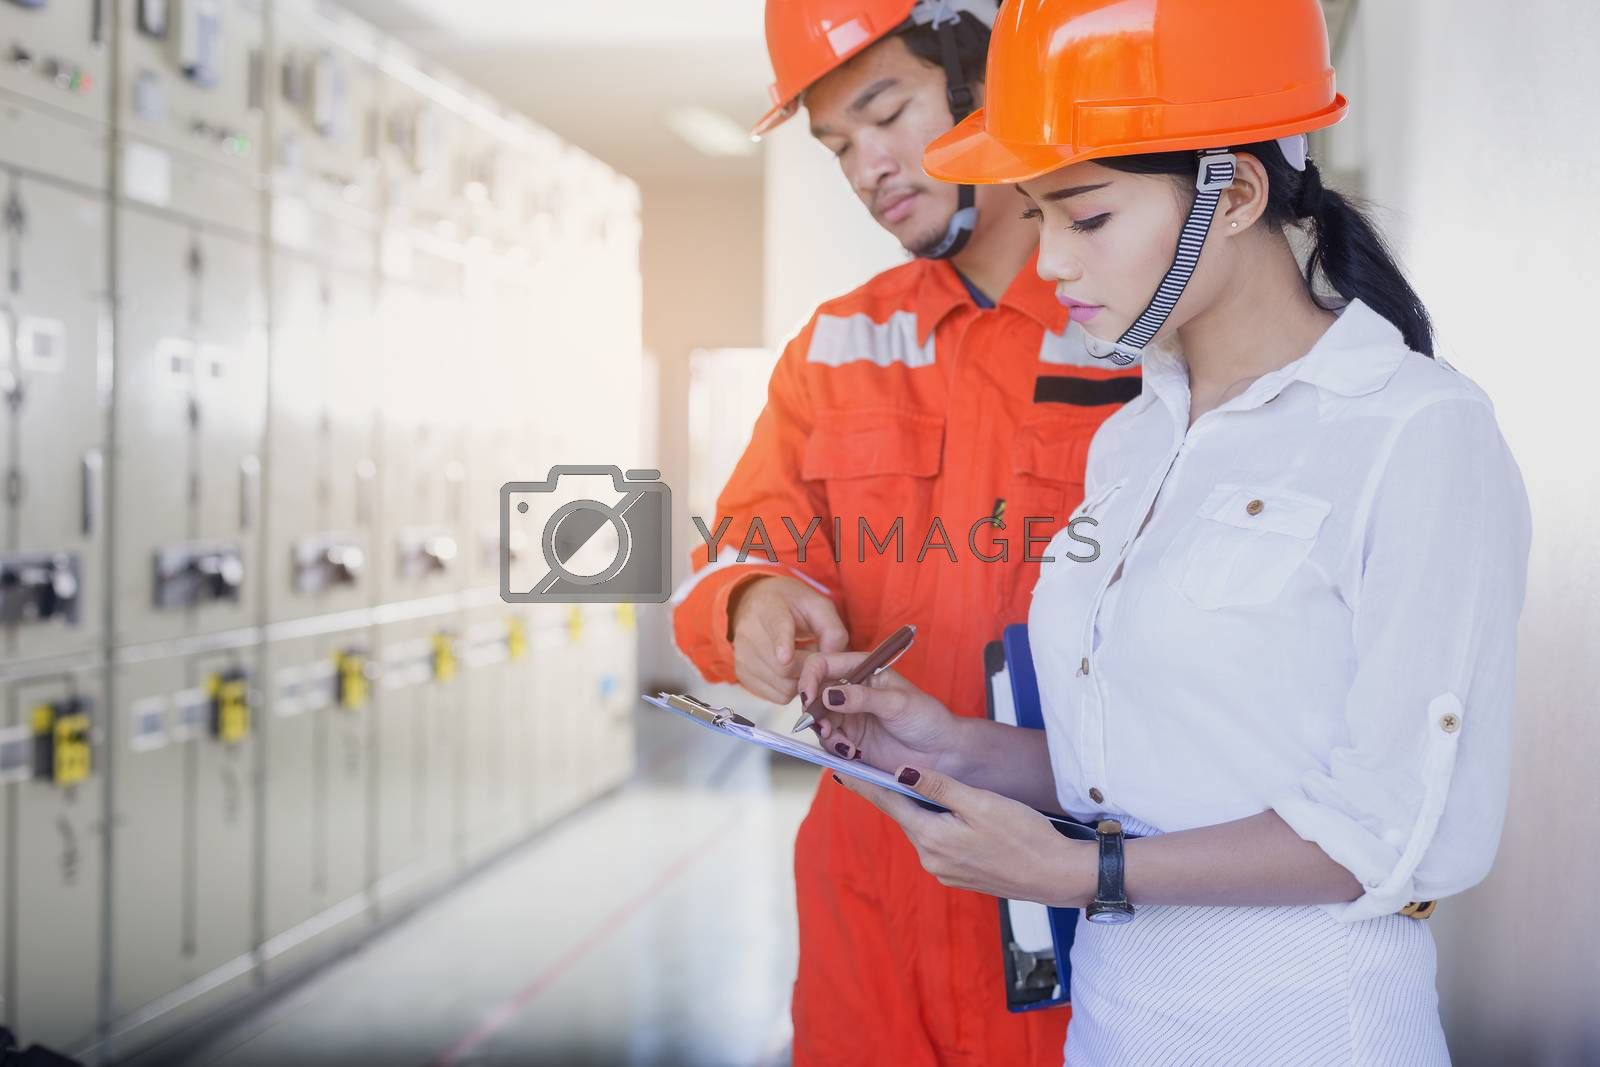 Executives and Electrical Engineers are checking the electrical equipment for their readiness.